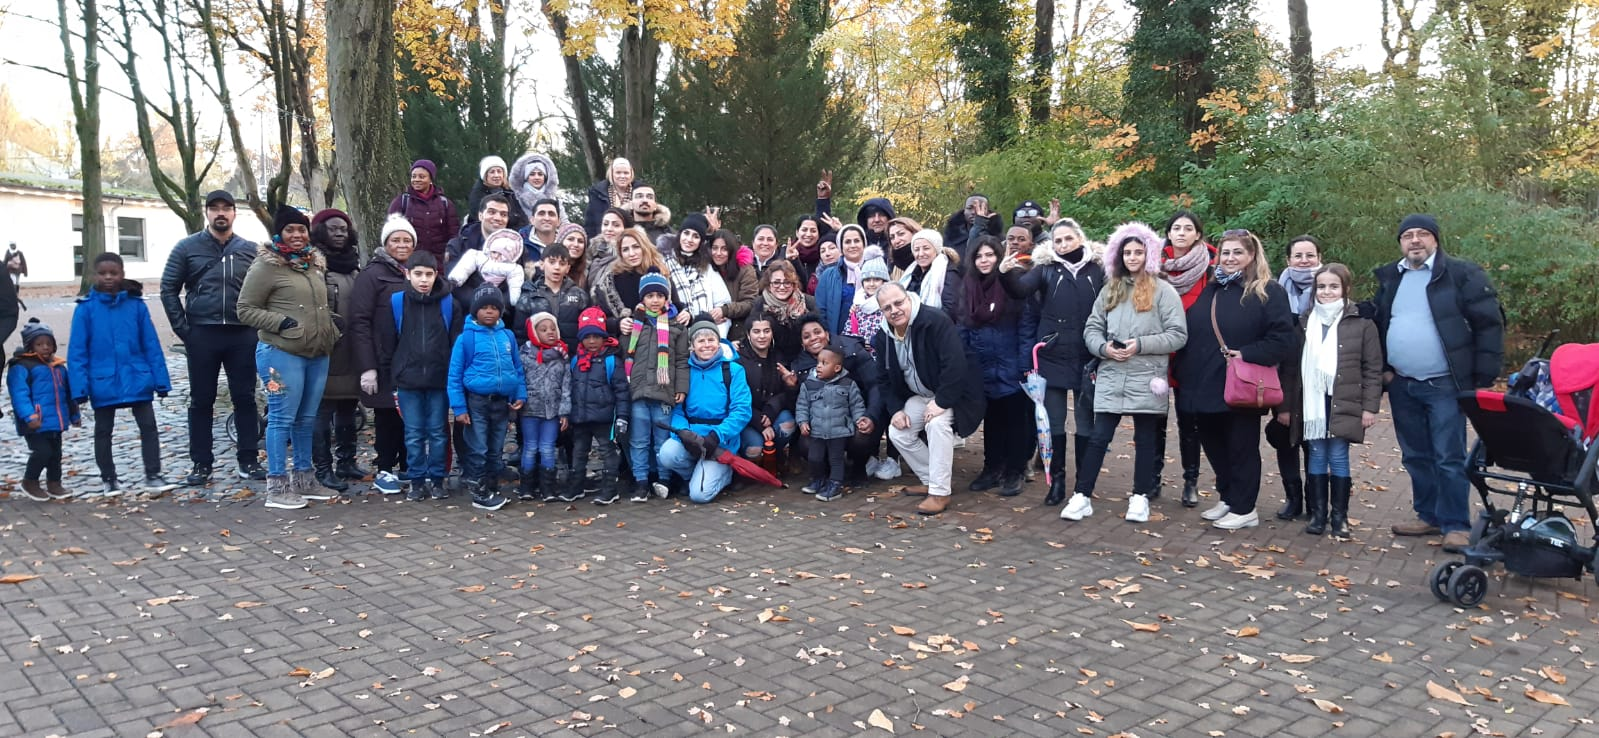 Besuch im Zoo Hannover am 16.11.2019